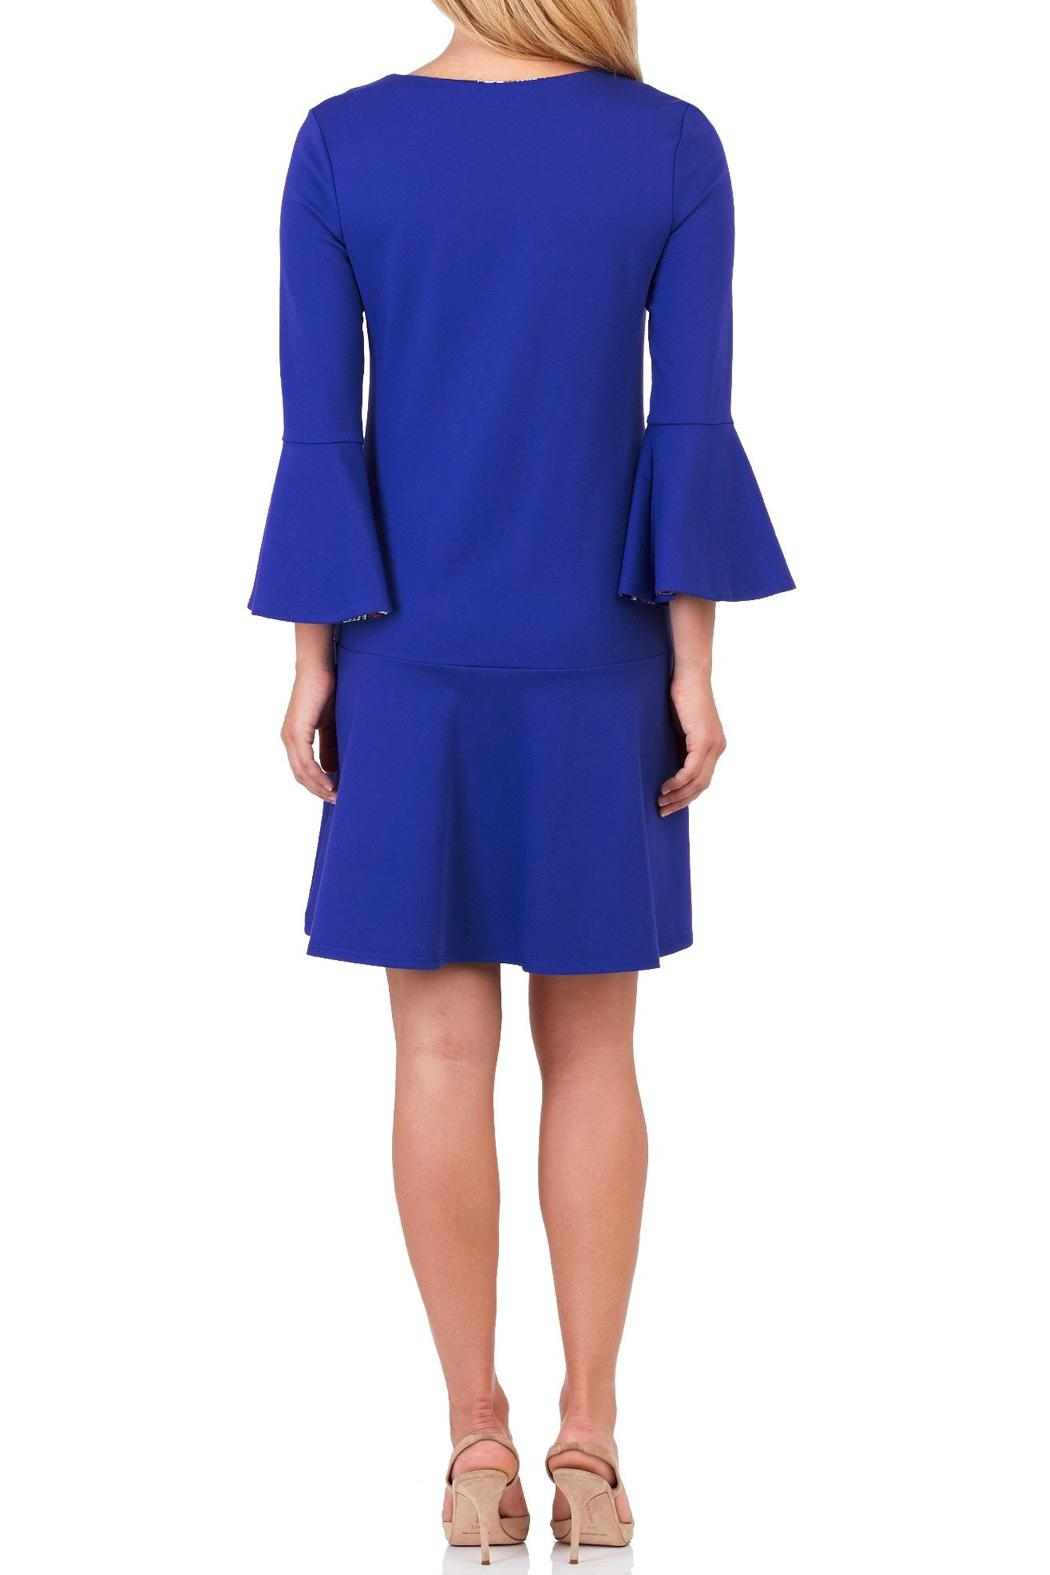 Jude Connally Gabriella Ponte Dress - Front Full Image